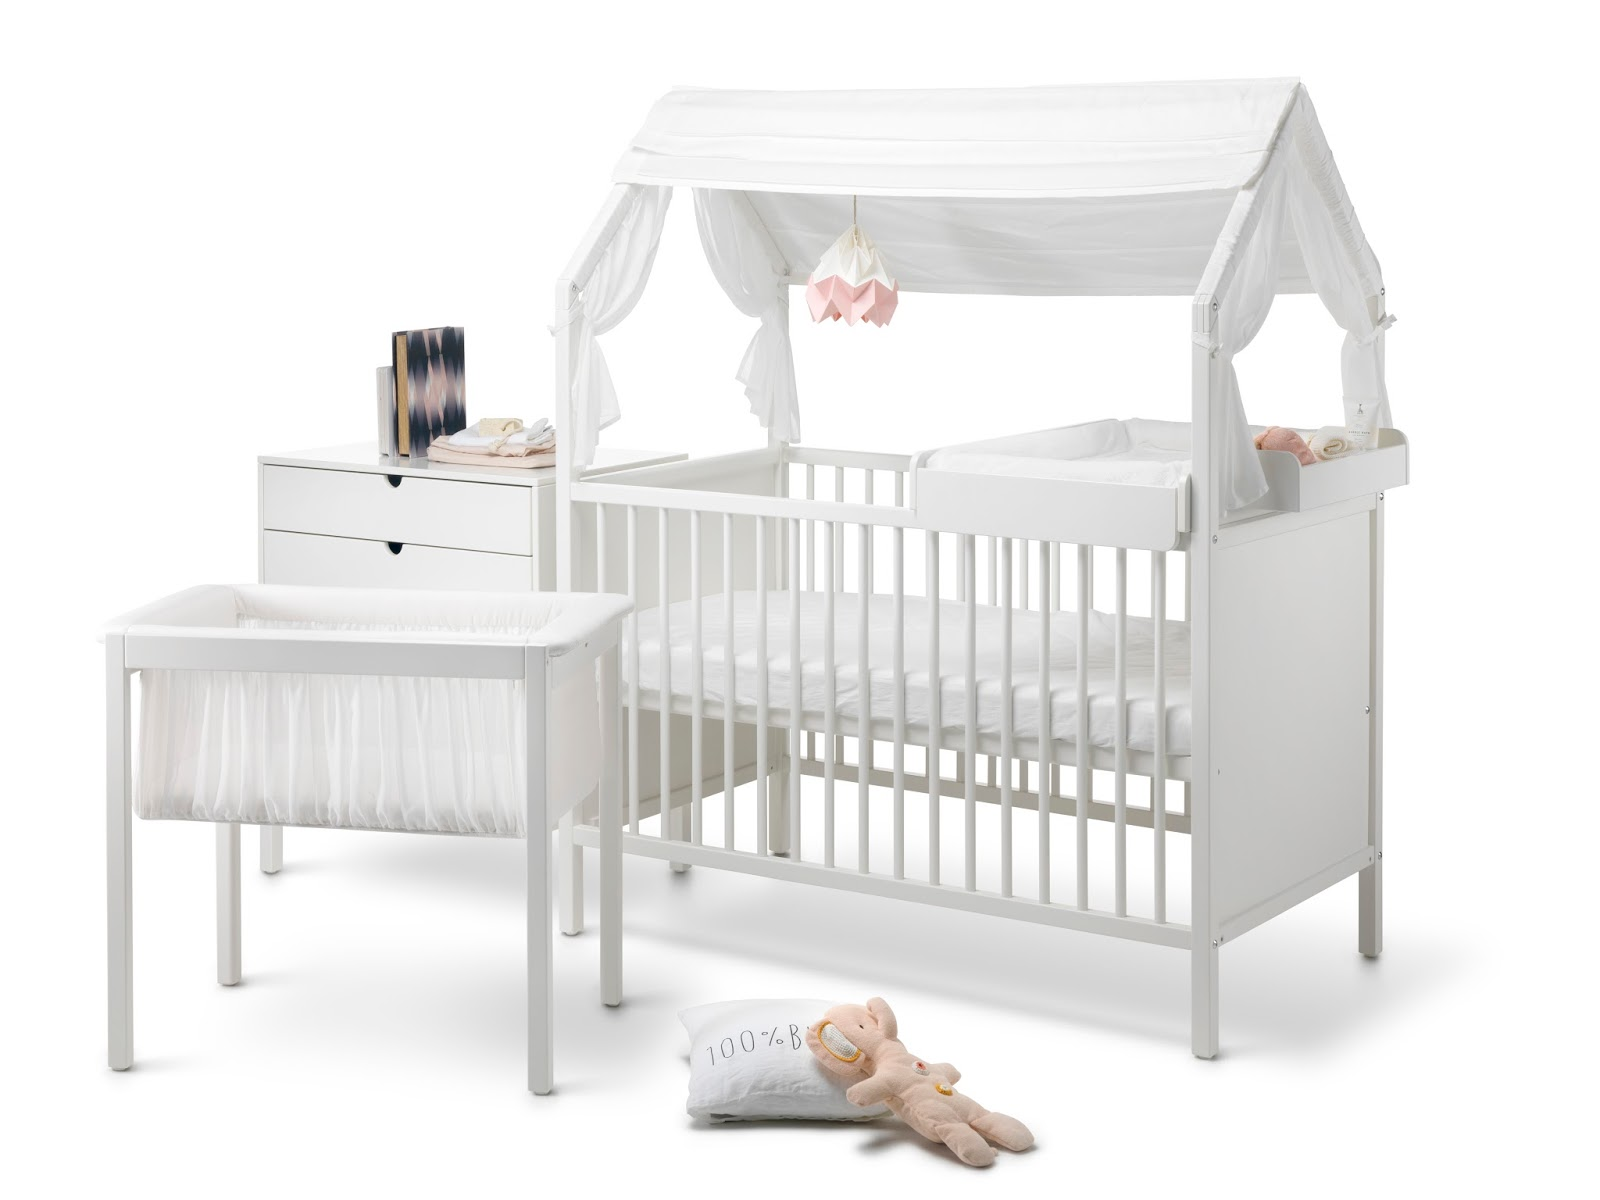 Preparing for your babyu0027s arrival while designing your dream nursery is an exciting time and whether youu0027ve got lots of space or little to spare Stokke ...  sc 1 st  Bump to Baby & Stokke Home Nursery Collection - UK Family Travel u0026 Lifestyle ...